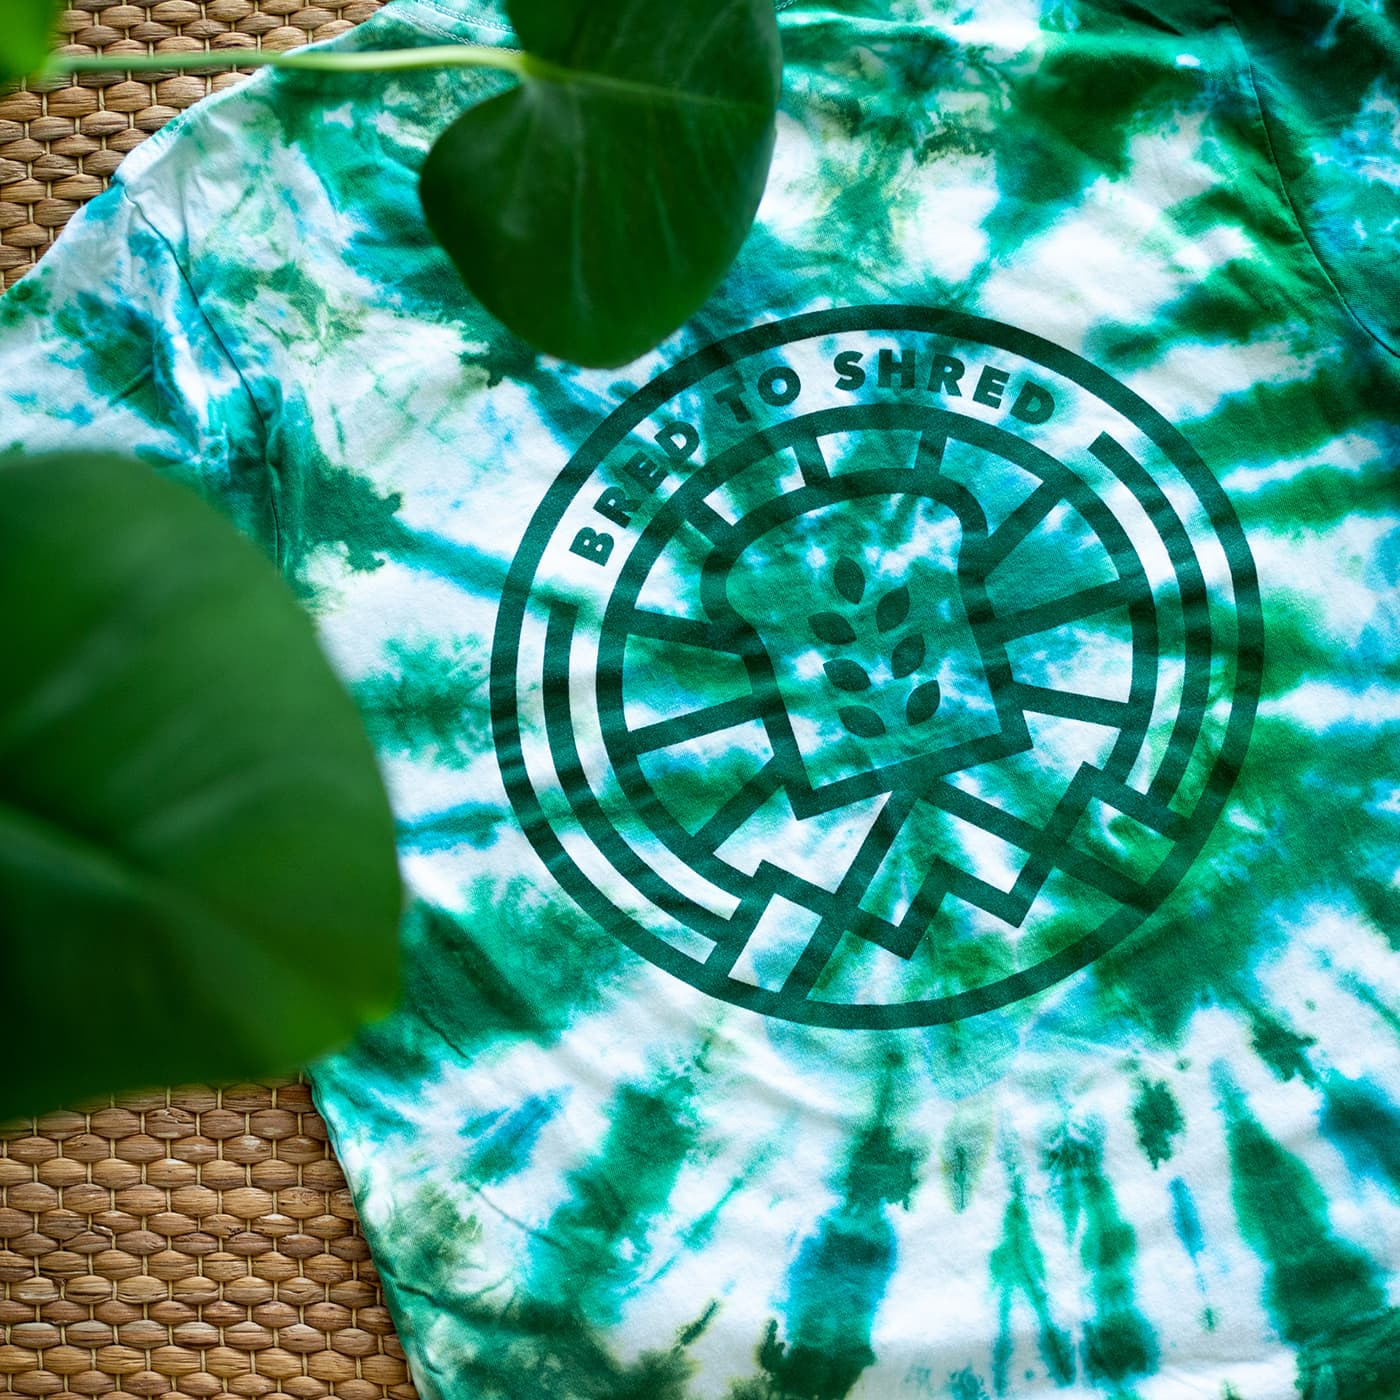 Blue, green and white tie-dyed t-shirt with a circular slice of bread logo and the words: Bred to Shred on its back